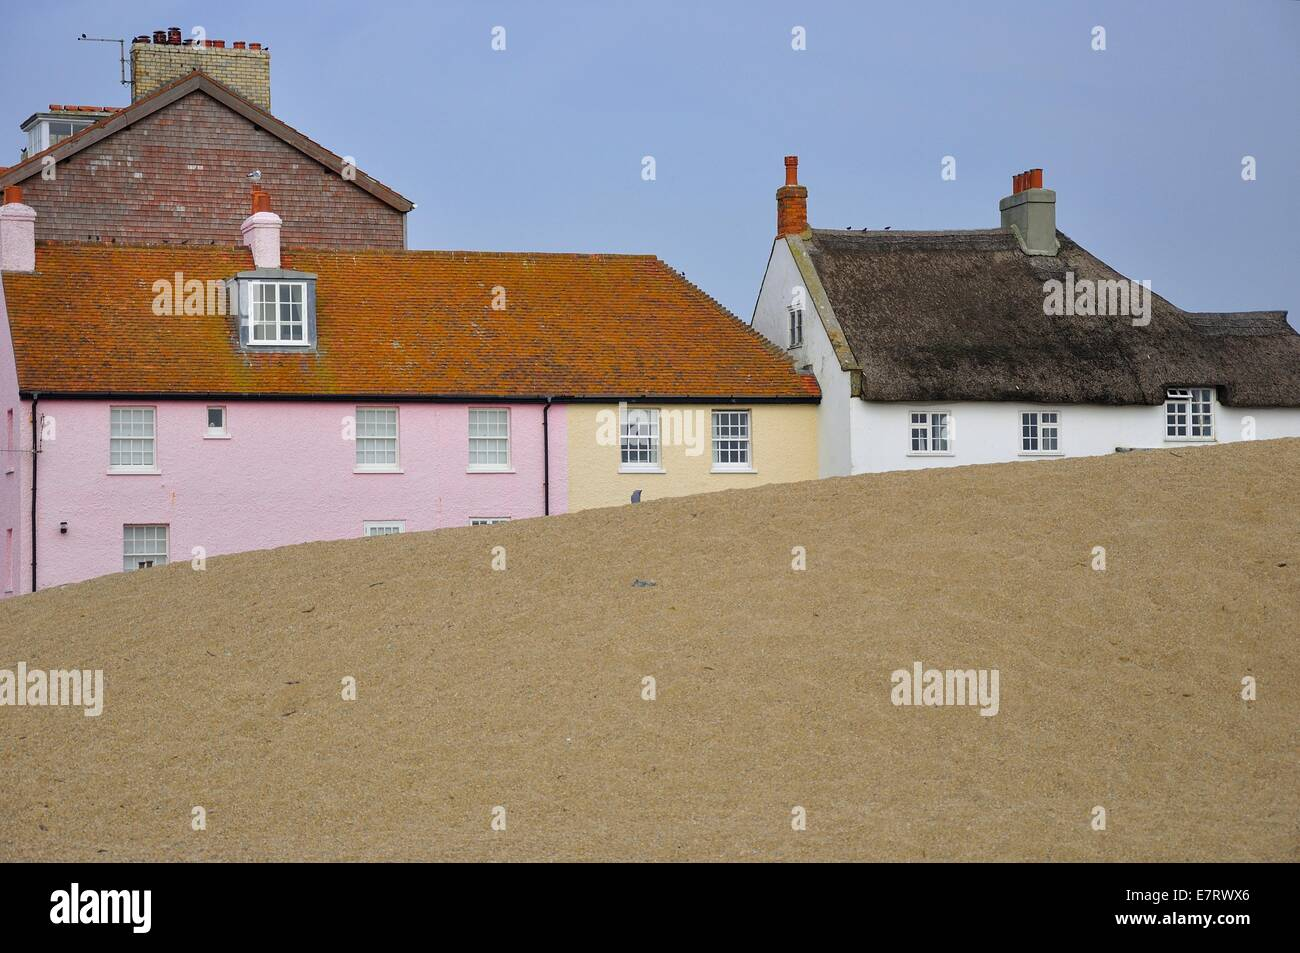 Houses fronting the shingle beach at West Bay, Bridport in Dorset - Stock Image